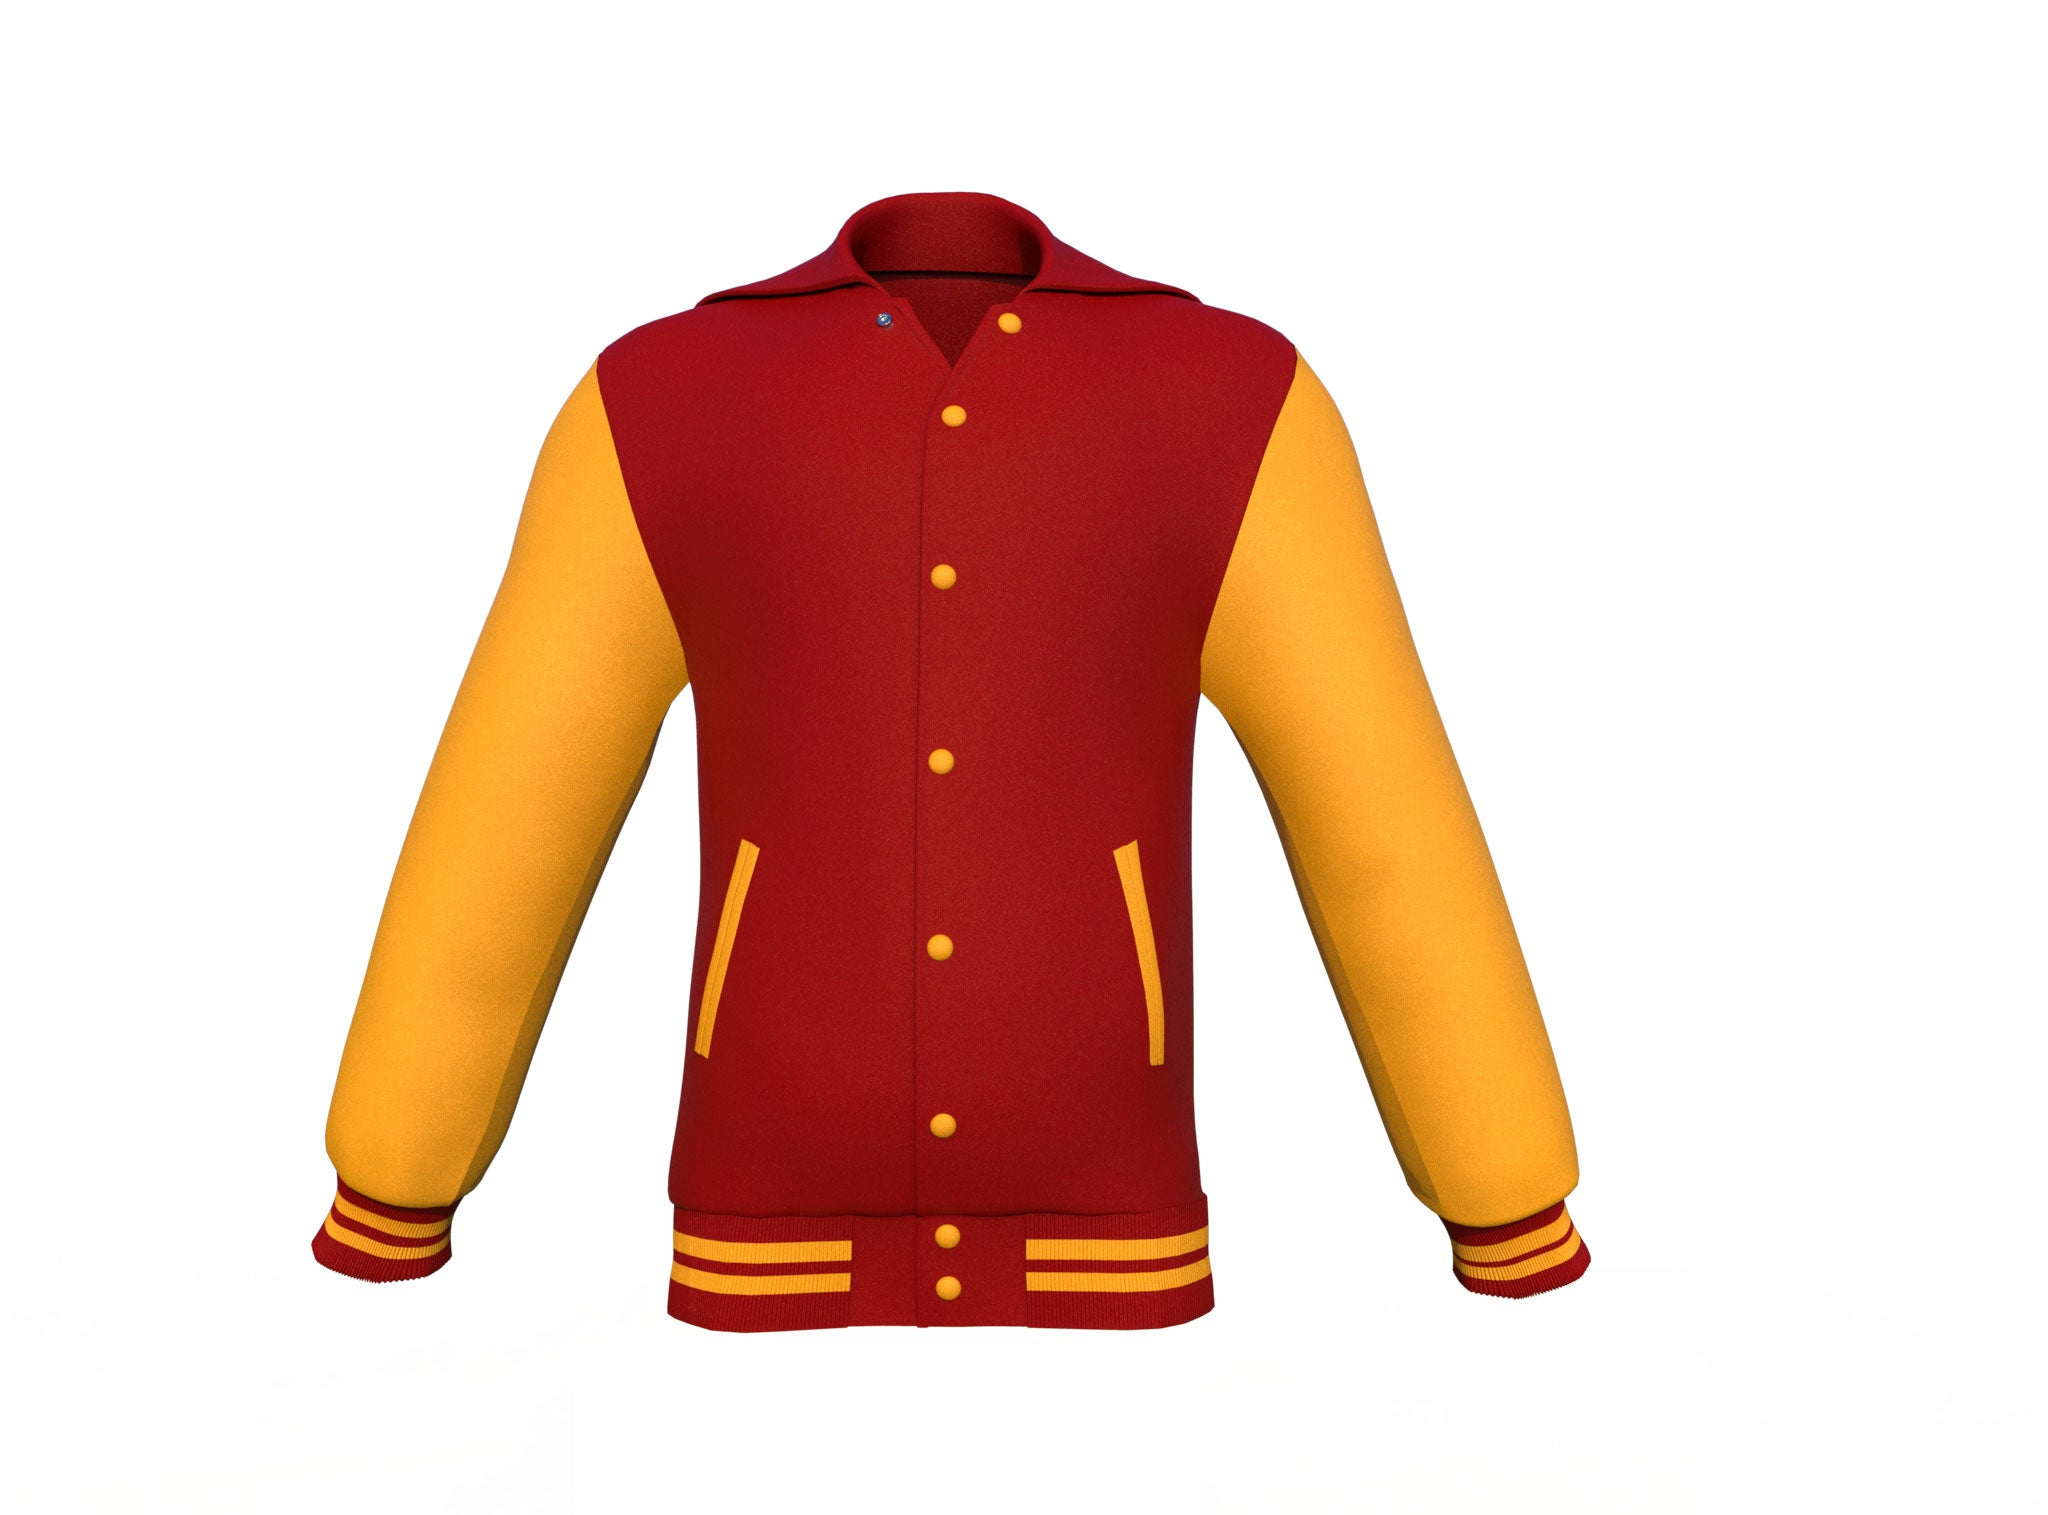 Maroon Varsity Letterman Jacket with Gold Sleeves